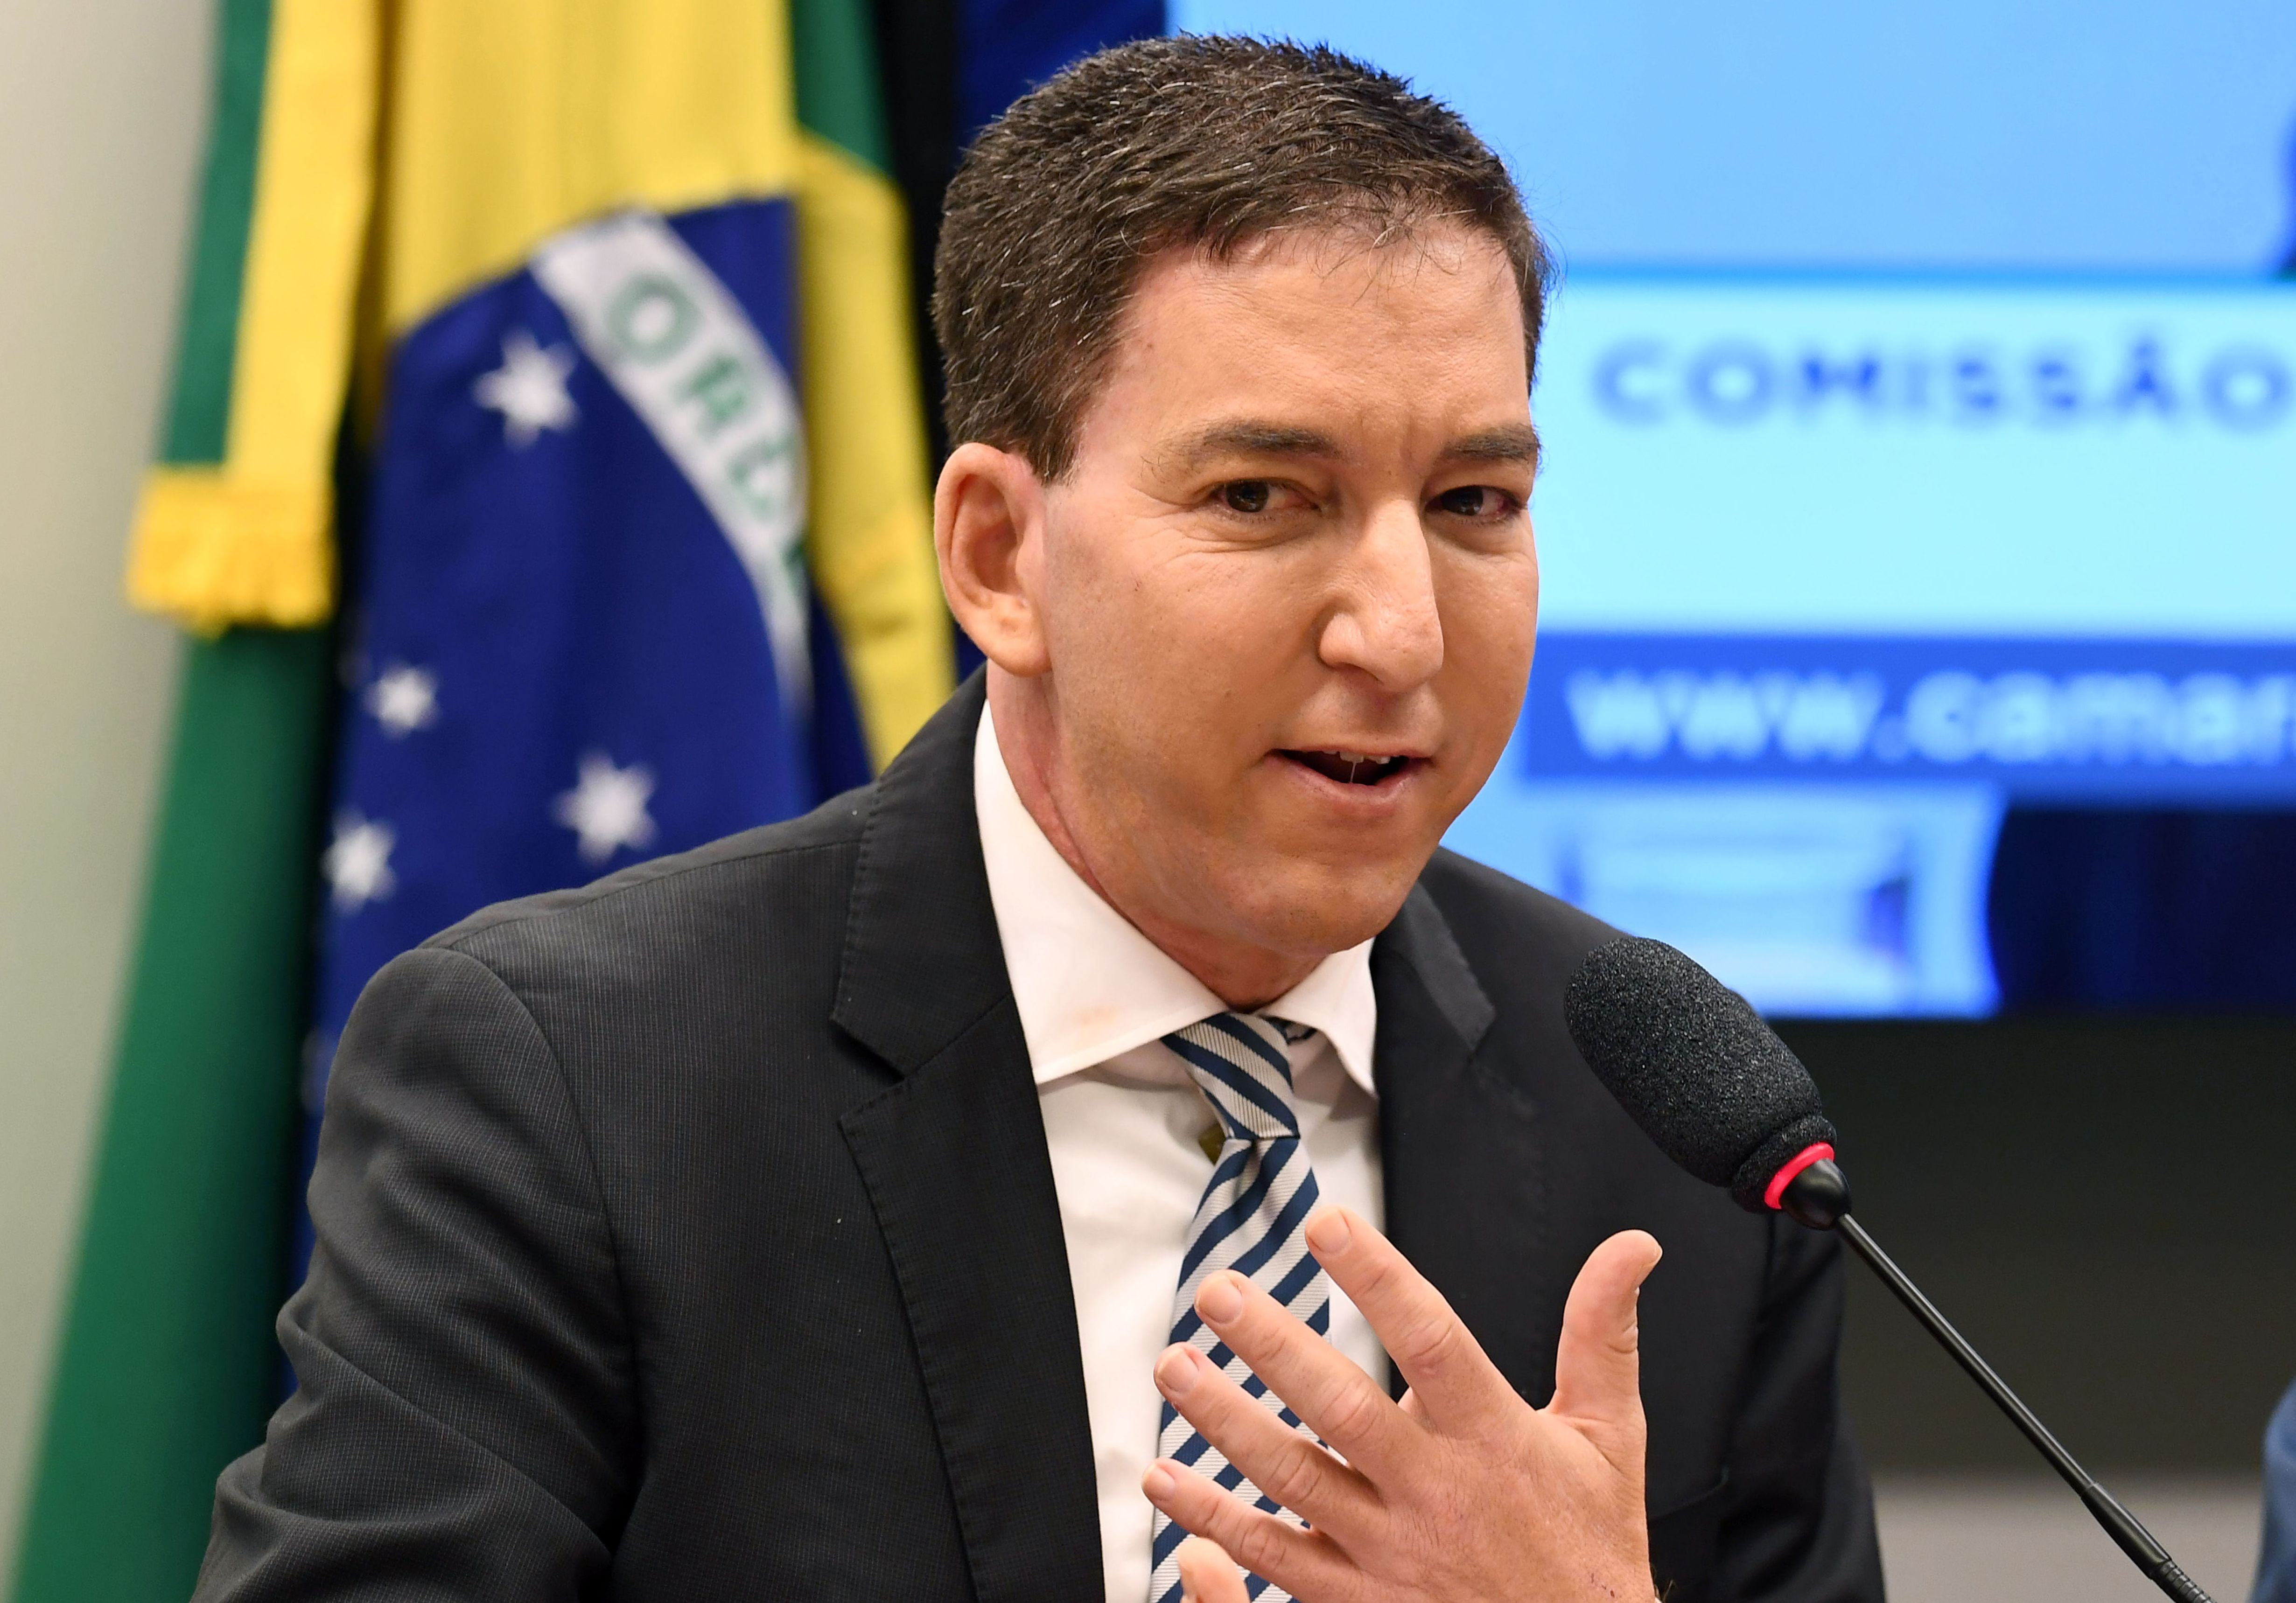 Journalist Glenn Greenwald charged with cybercrimes for reporting in Brazil